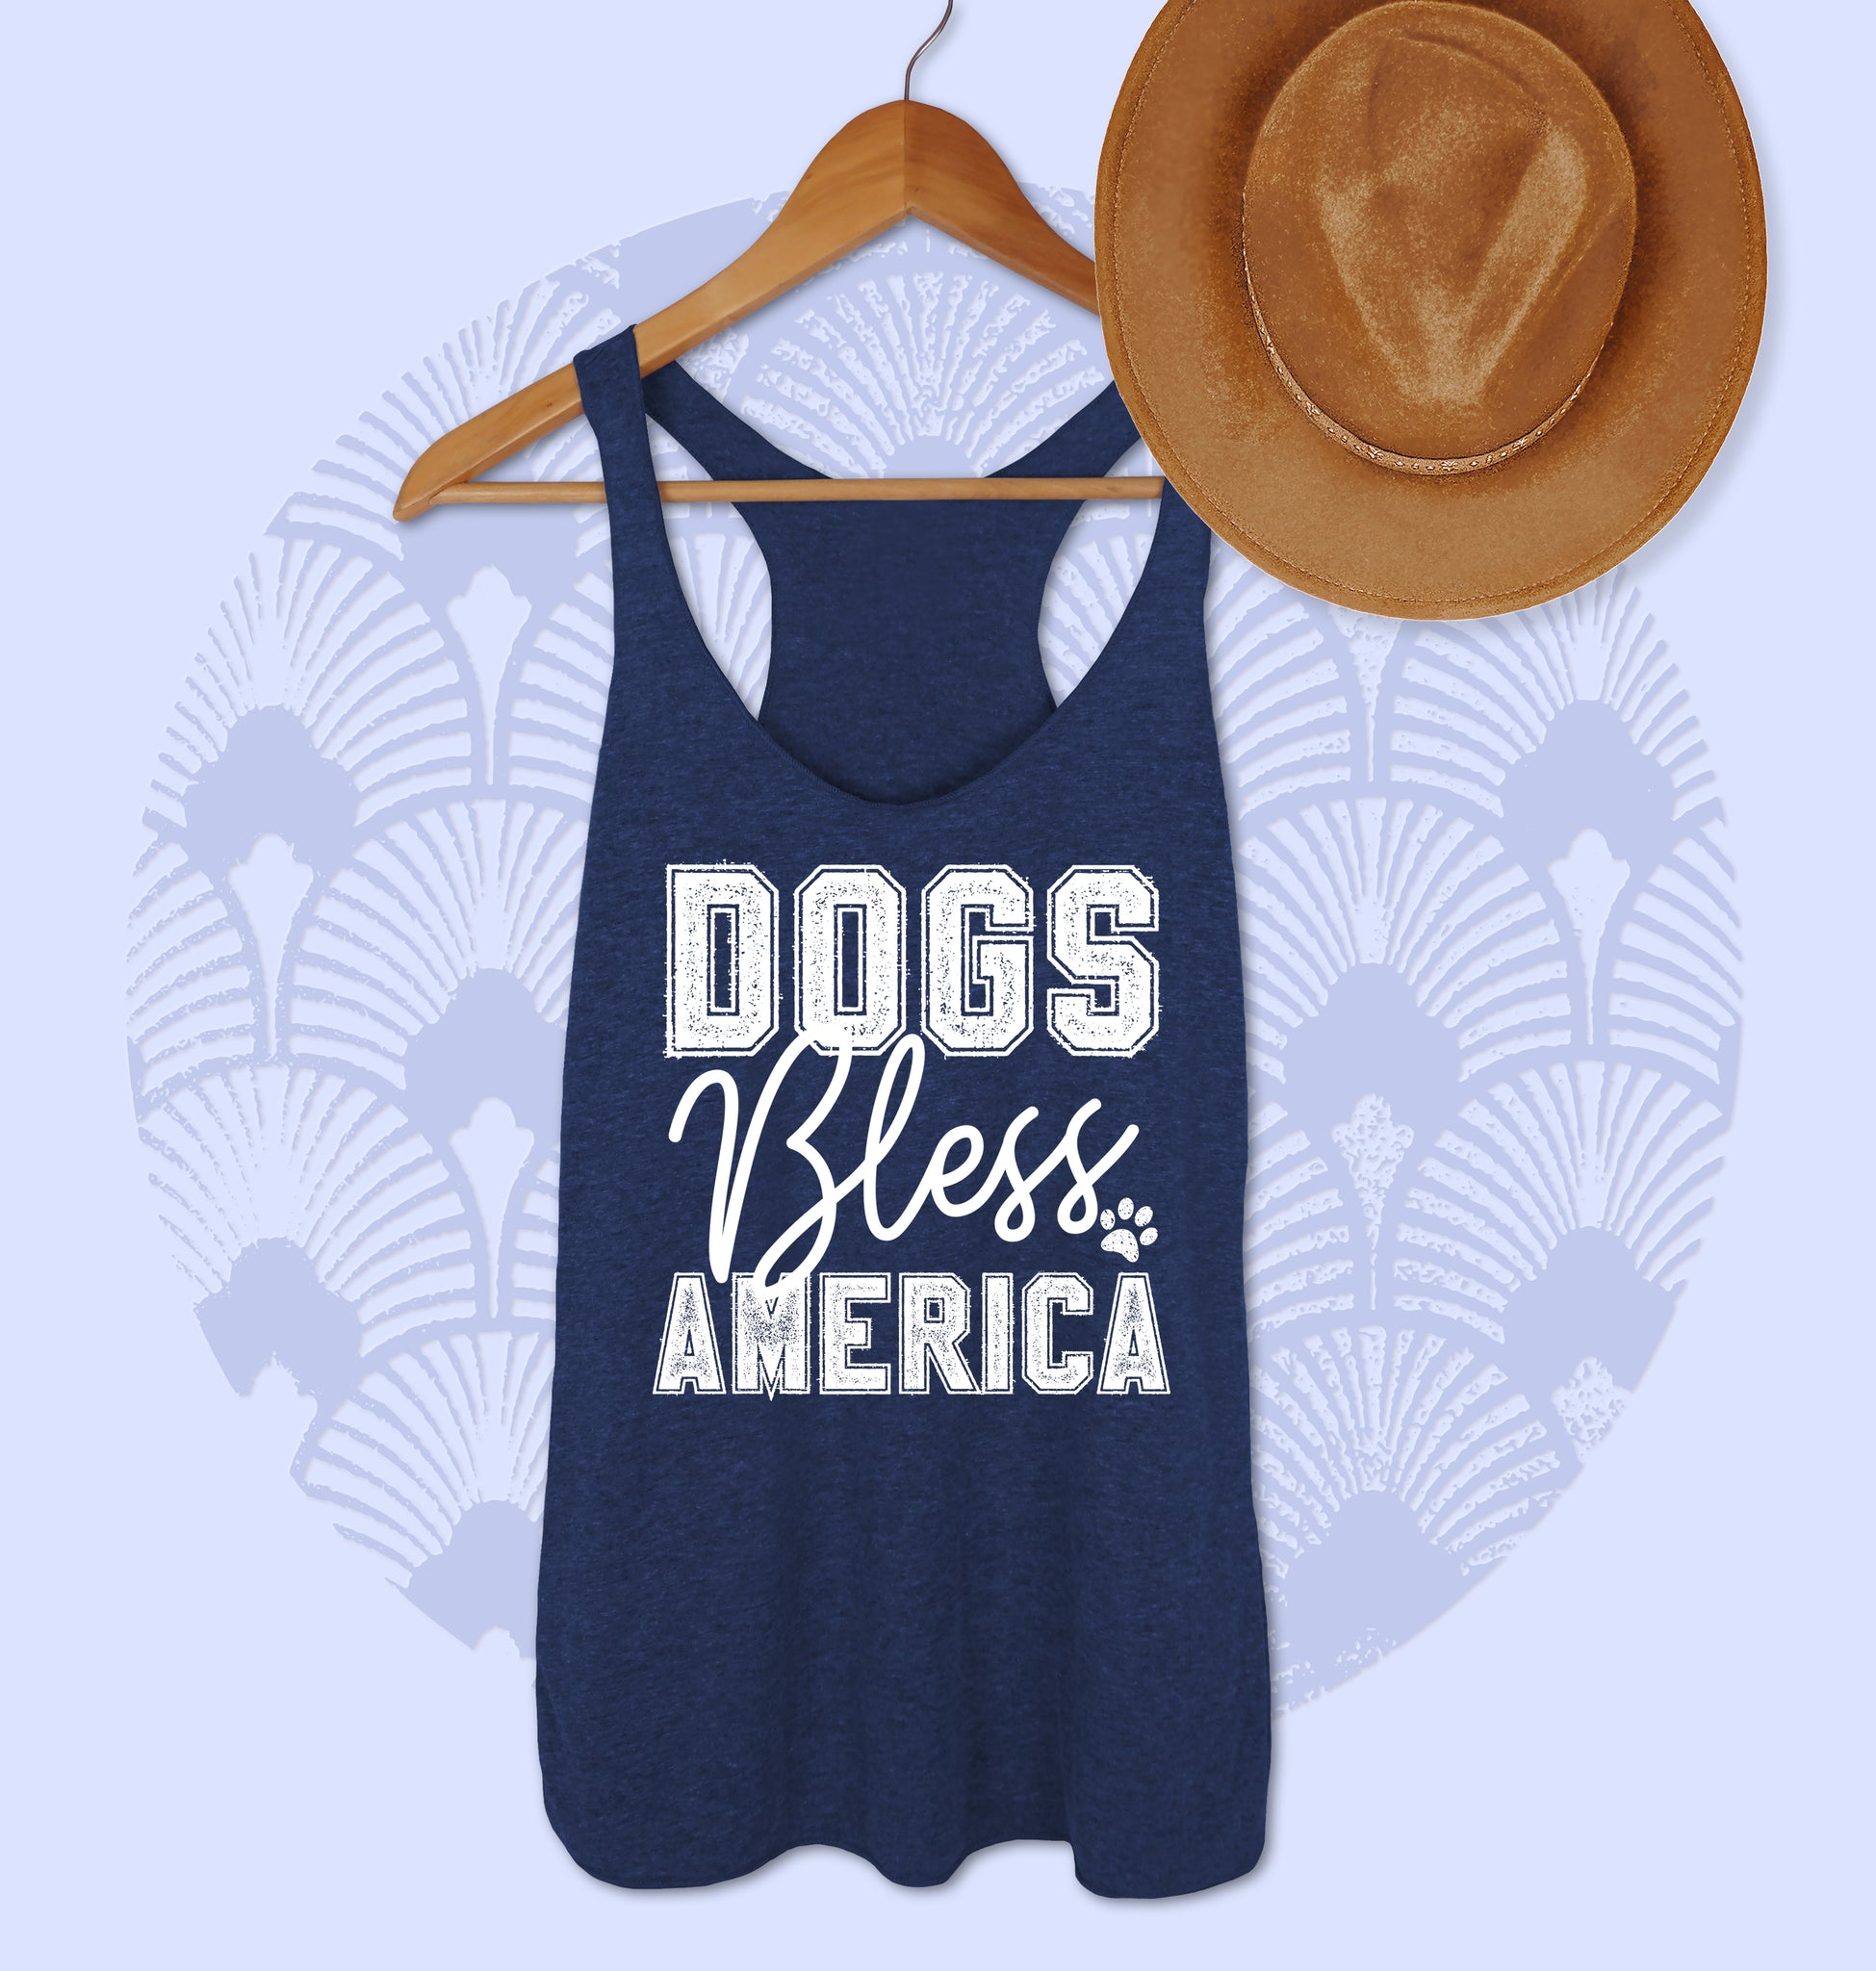 Navy tank top saying dogs bless america - HighCiti